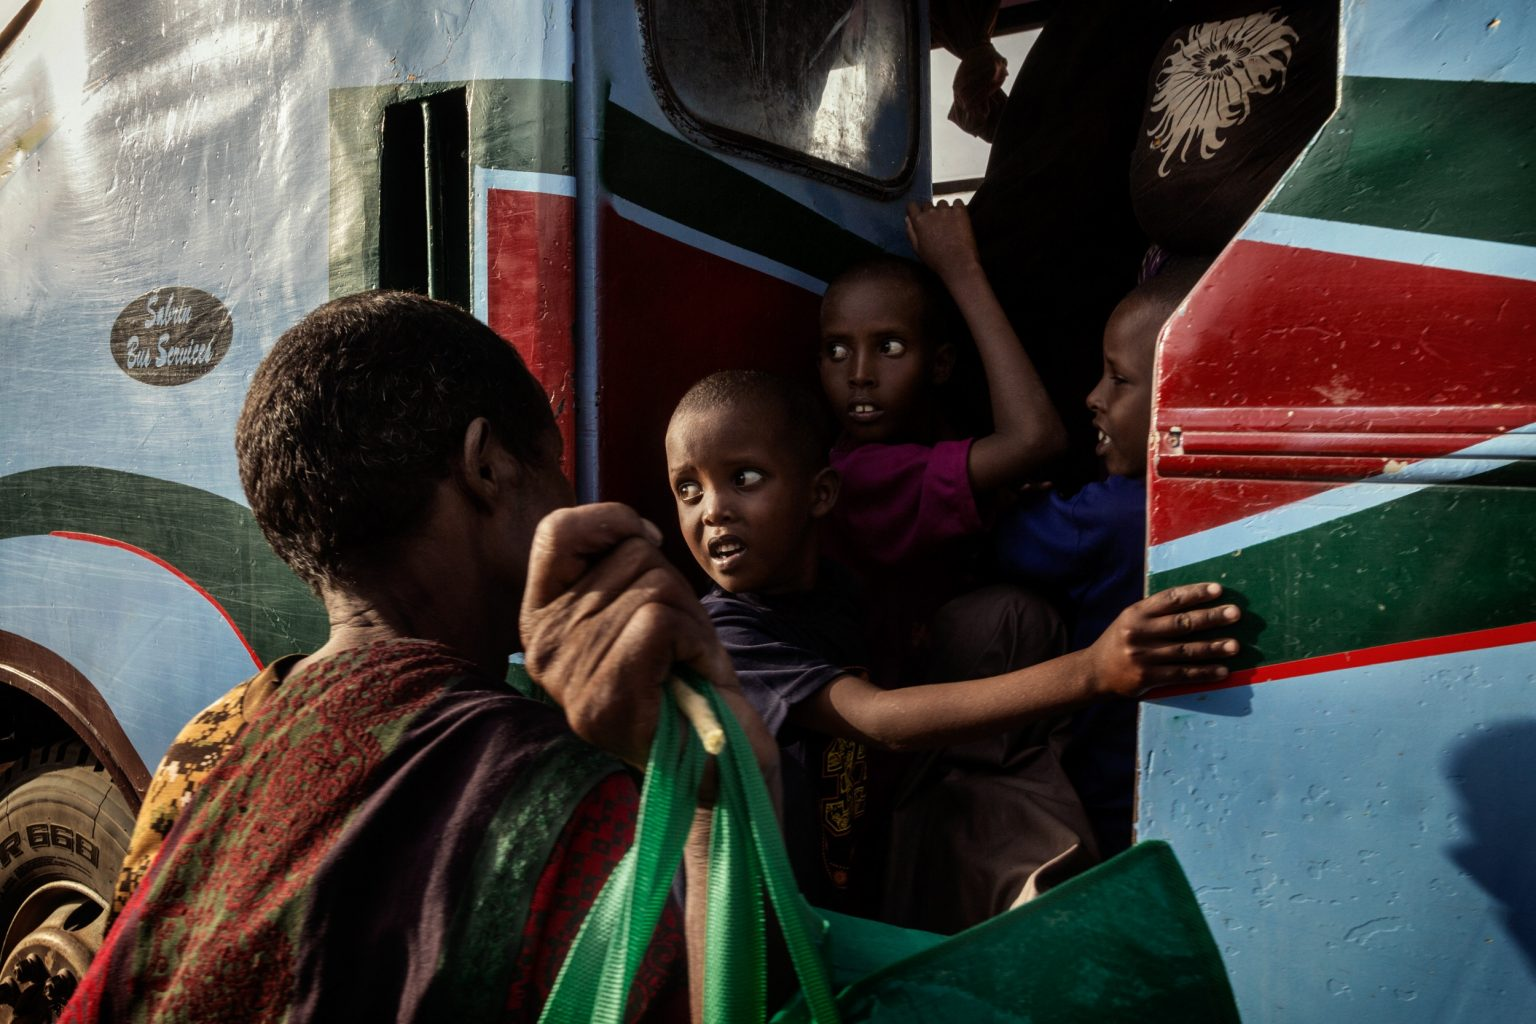 Africa, Kenya, Dadaab. 25/02/2016. Dadaab remains the largest refugee camp in the world, with more than 350,000 inhabitants, 95% of them from Somalia.  Located in a semi-arid region of Kenya, 80 km from the Somali border, the camp arose in the Nineties to contain the displaced fleeing from the civil war in Somalia, and has continued to expand since then. Today it is composed of 5 large tent cities spread over more than 50 km.   Following pressure from the Nairobi government to close the camp, and in parallel with the stabilisation of a number of areas of Somalia, the UNHCR began an assisted repatriation programme for those refugees wishing to return to Somalia.